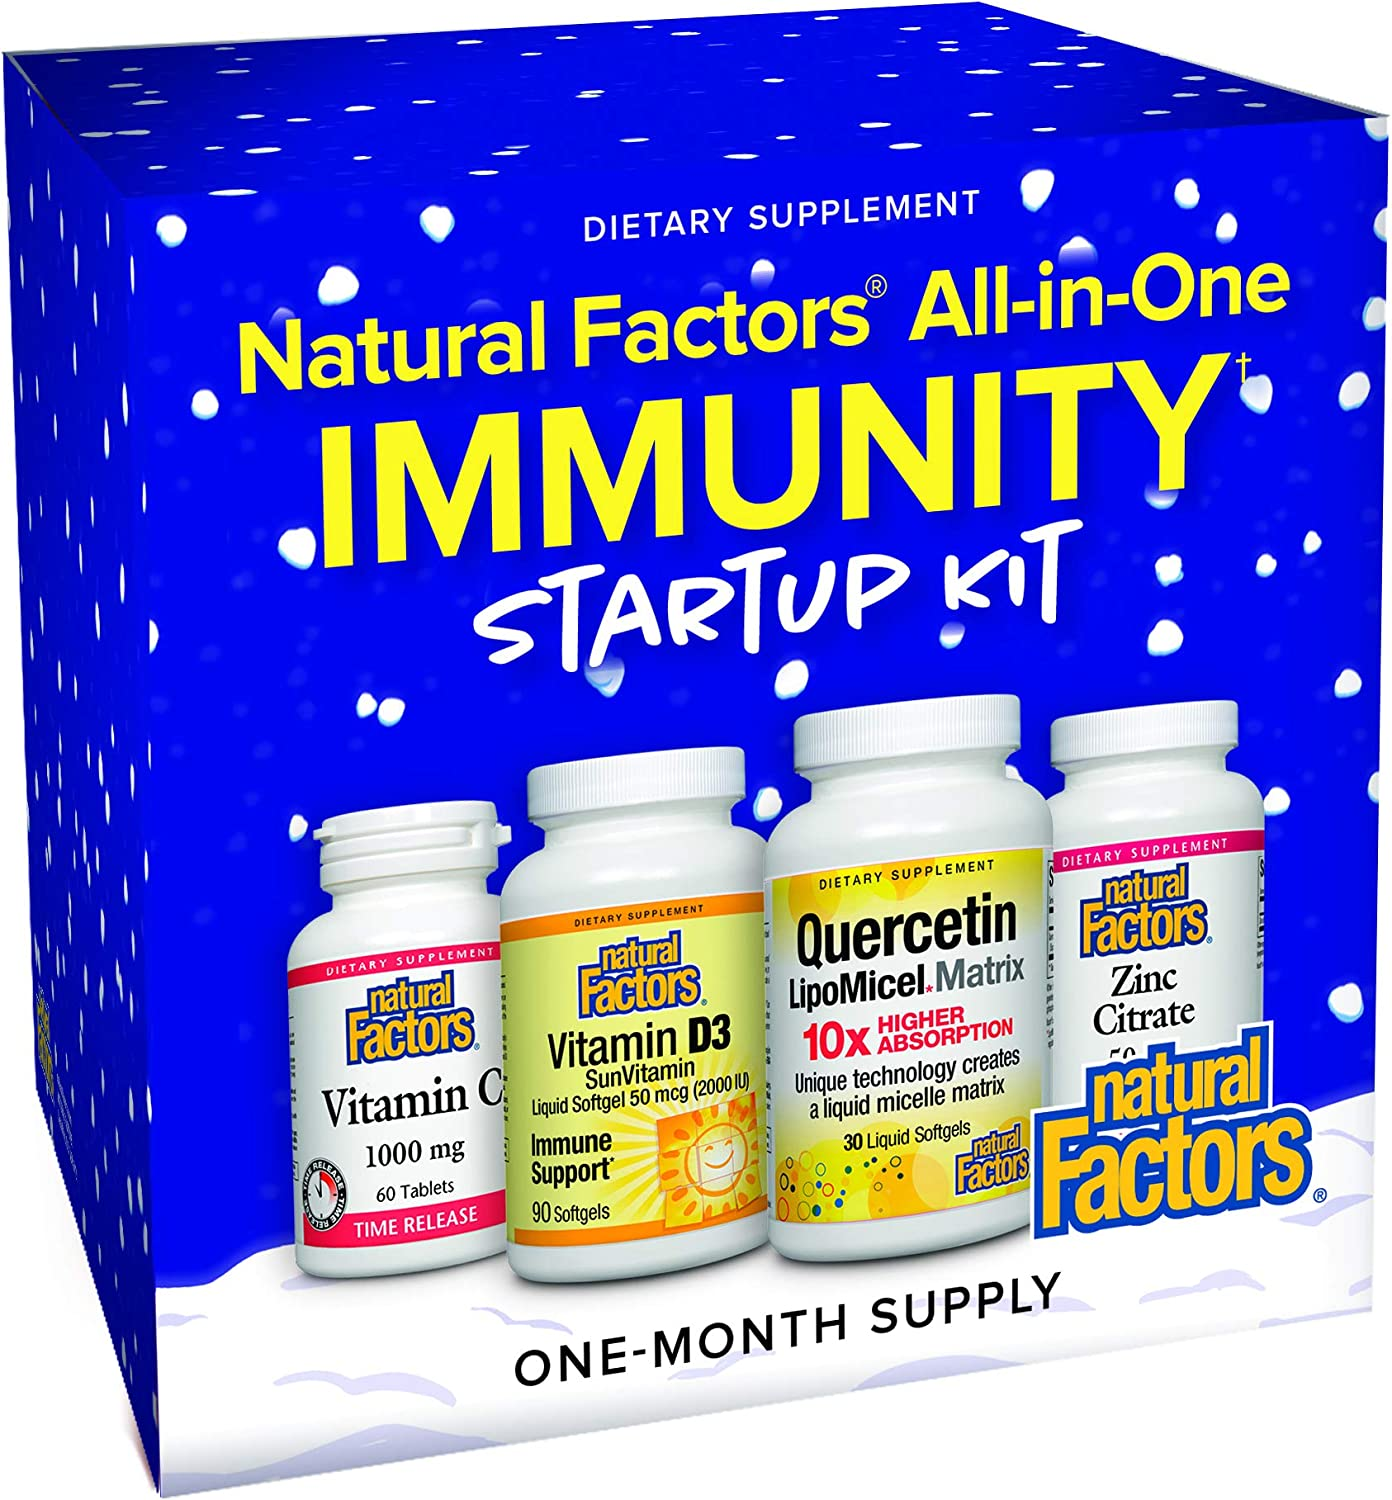 Natural Factors All-in-One Immunity Startup Kit - One Month Supply